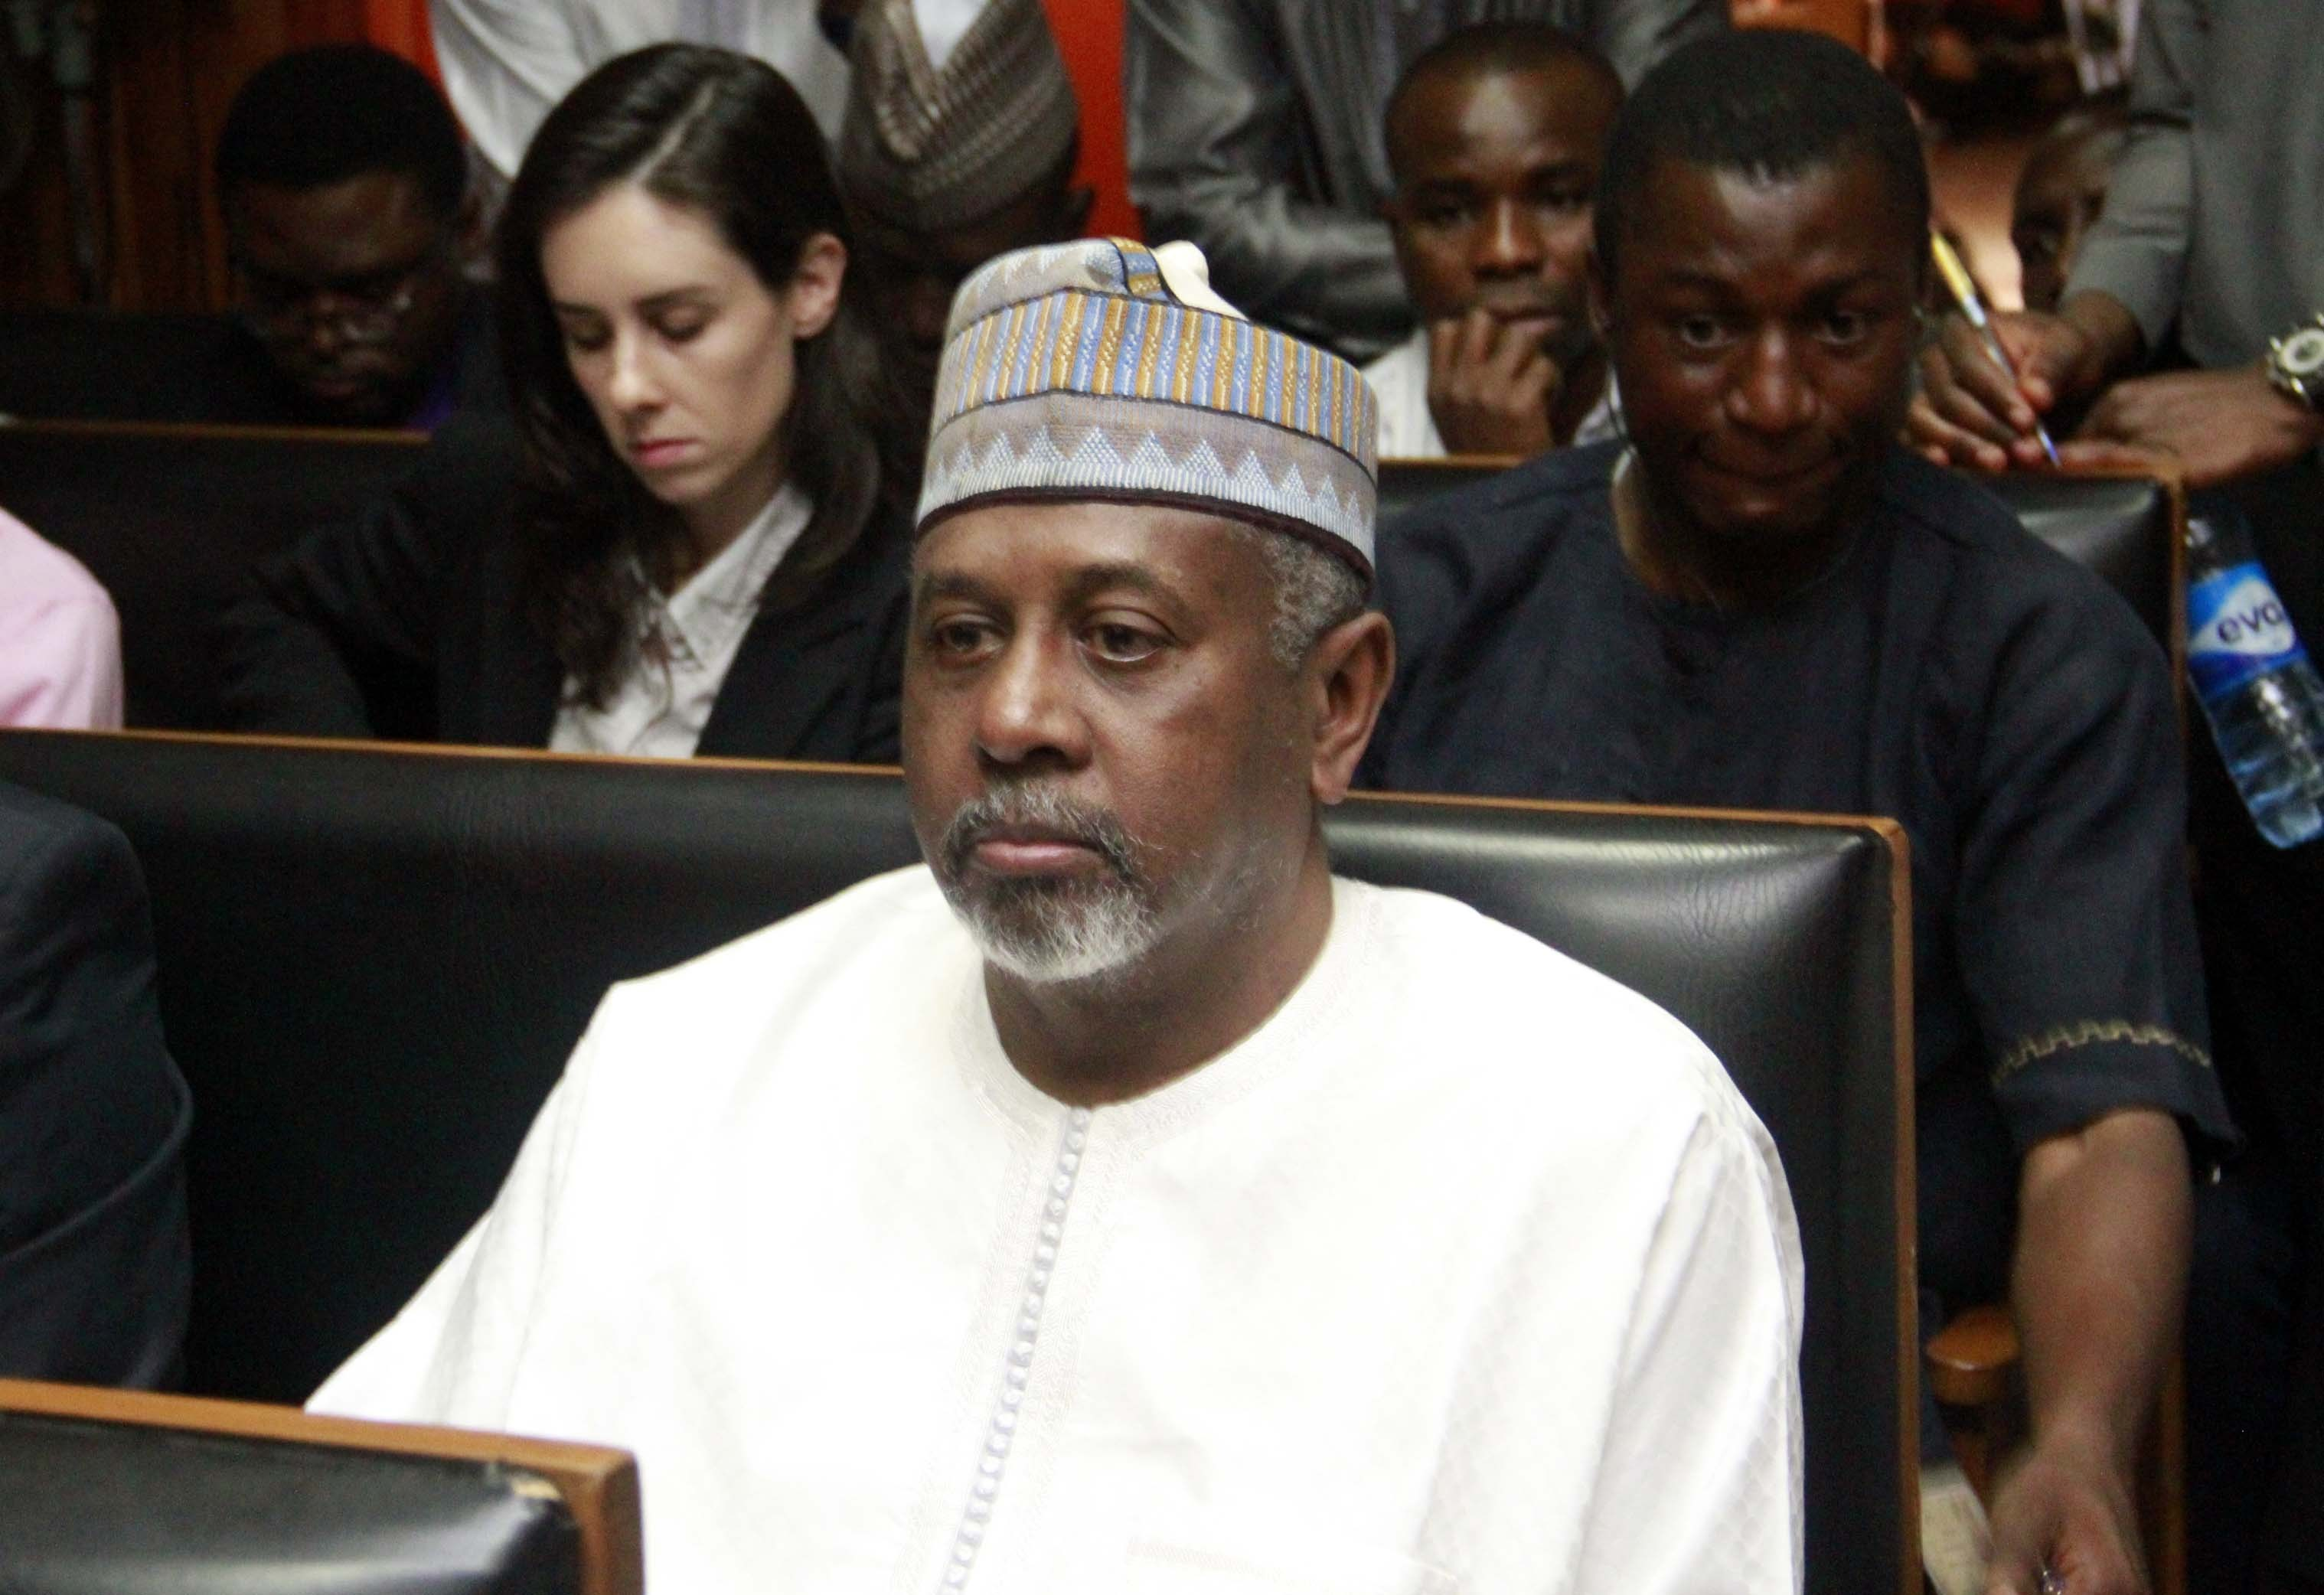 Metuh's trial: Dasuki's testimony marred by incoherent speech